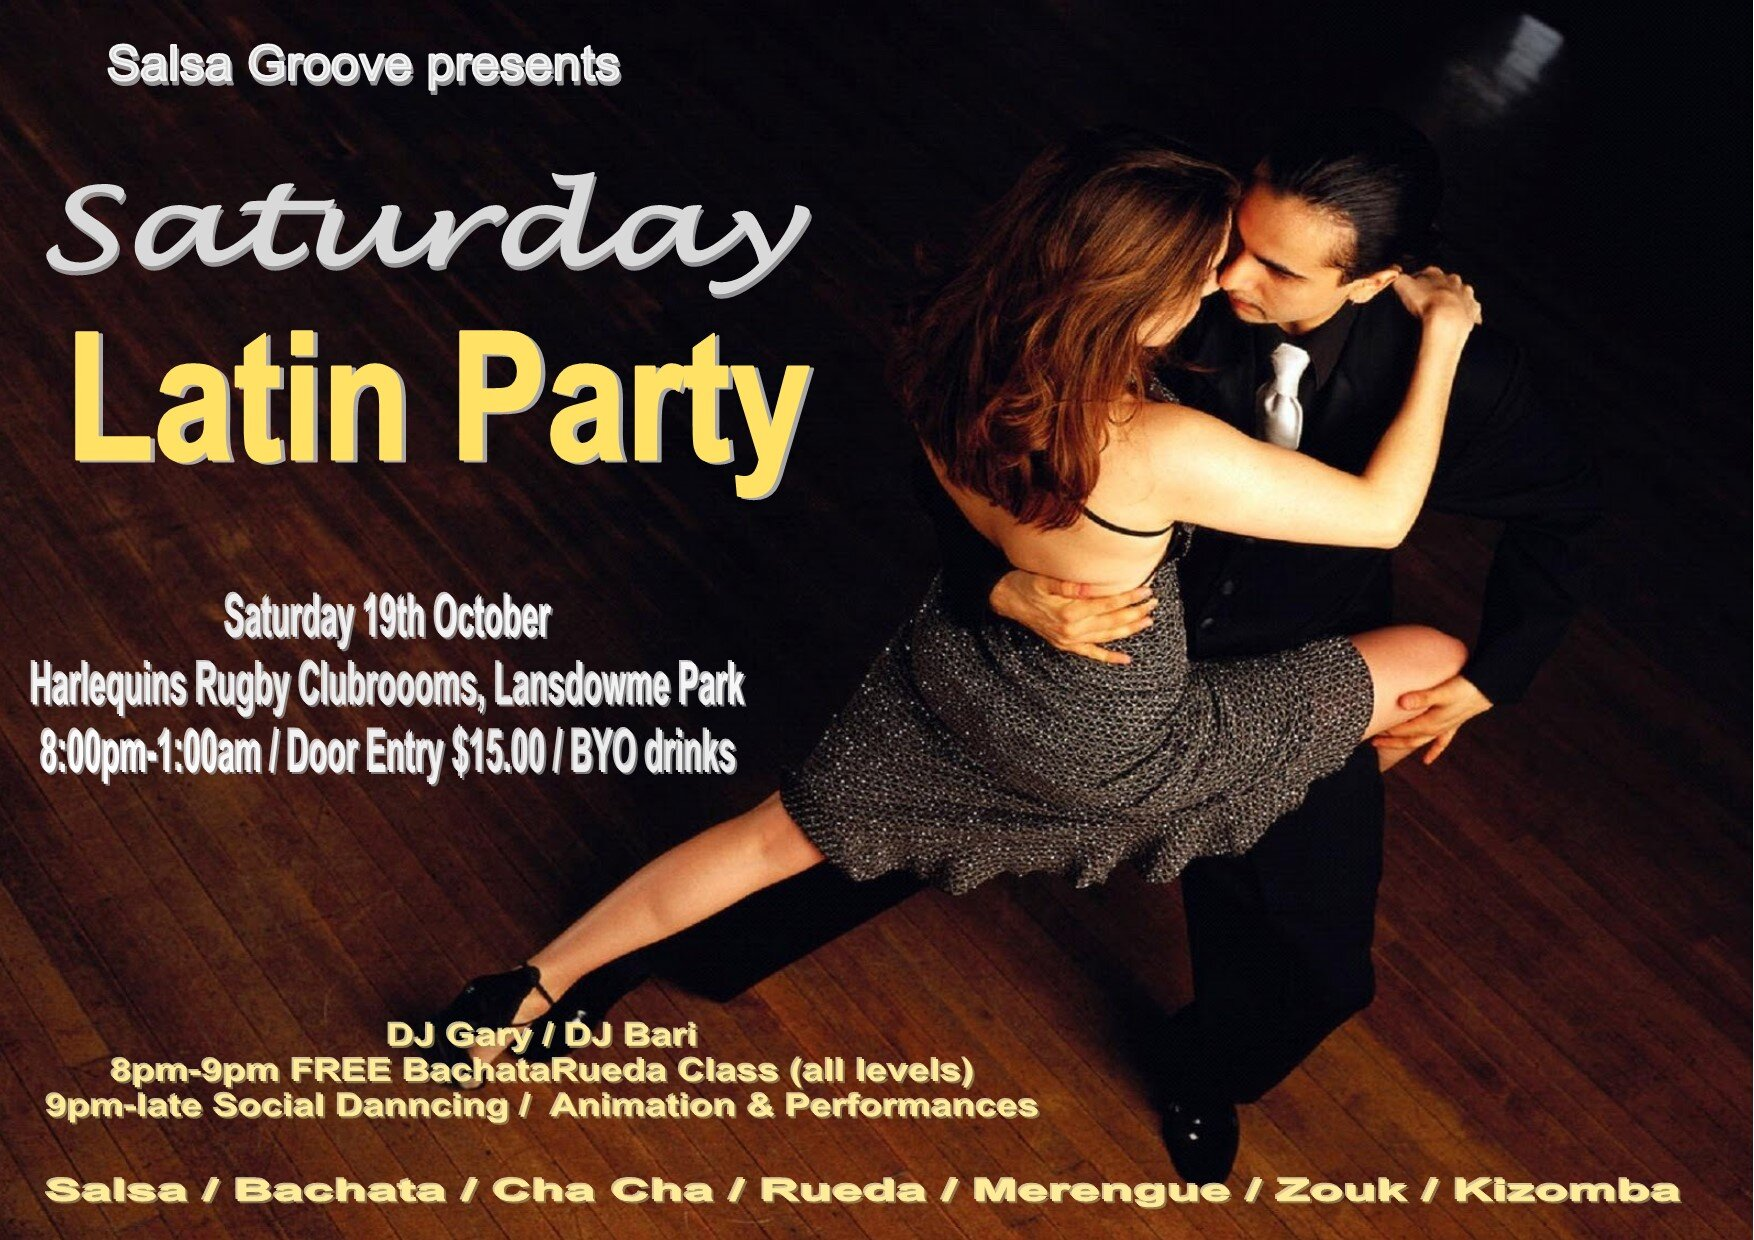 Saturday Latin Party - 19th October.jpg